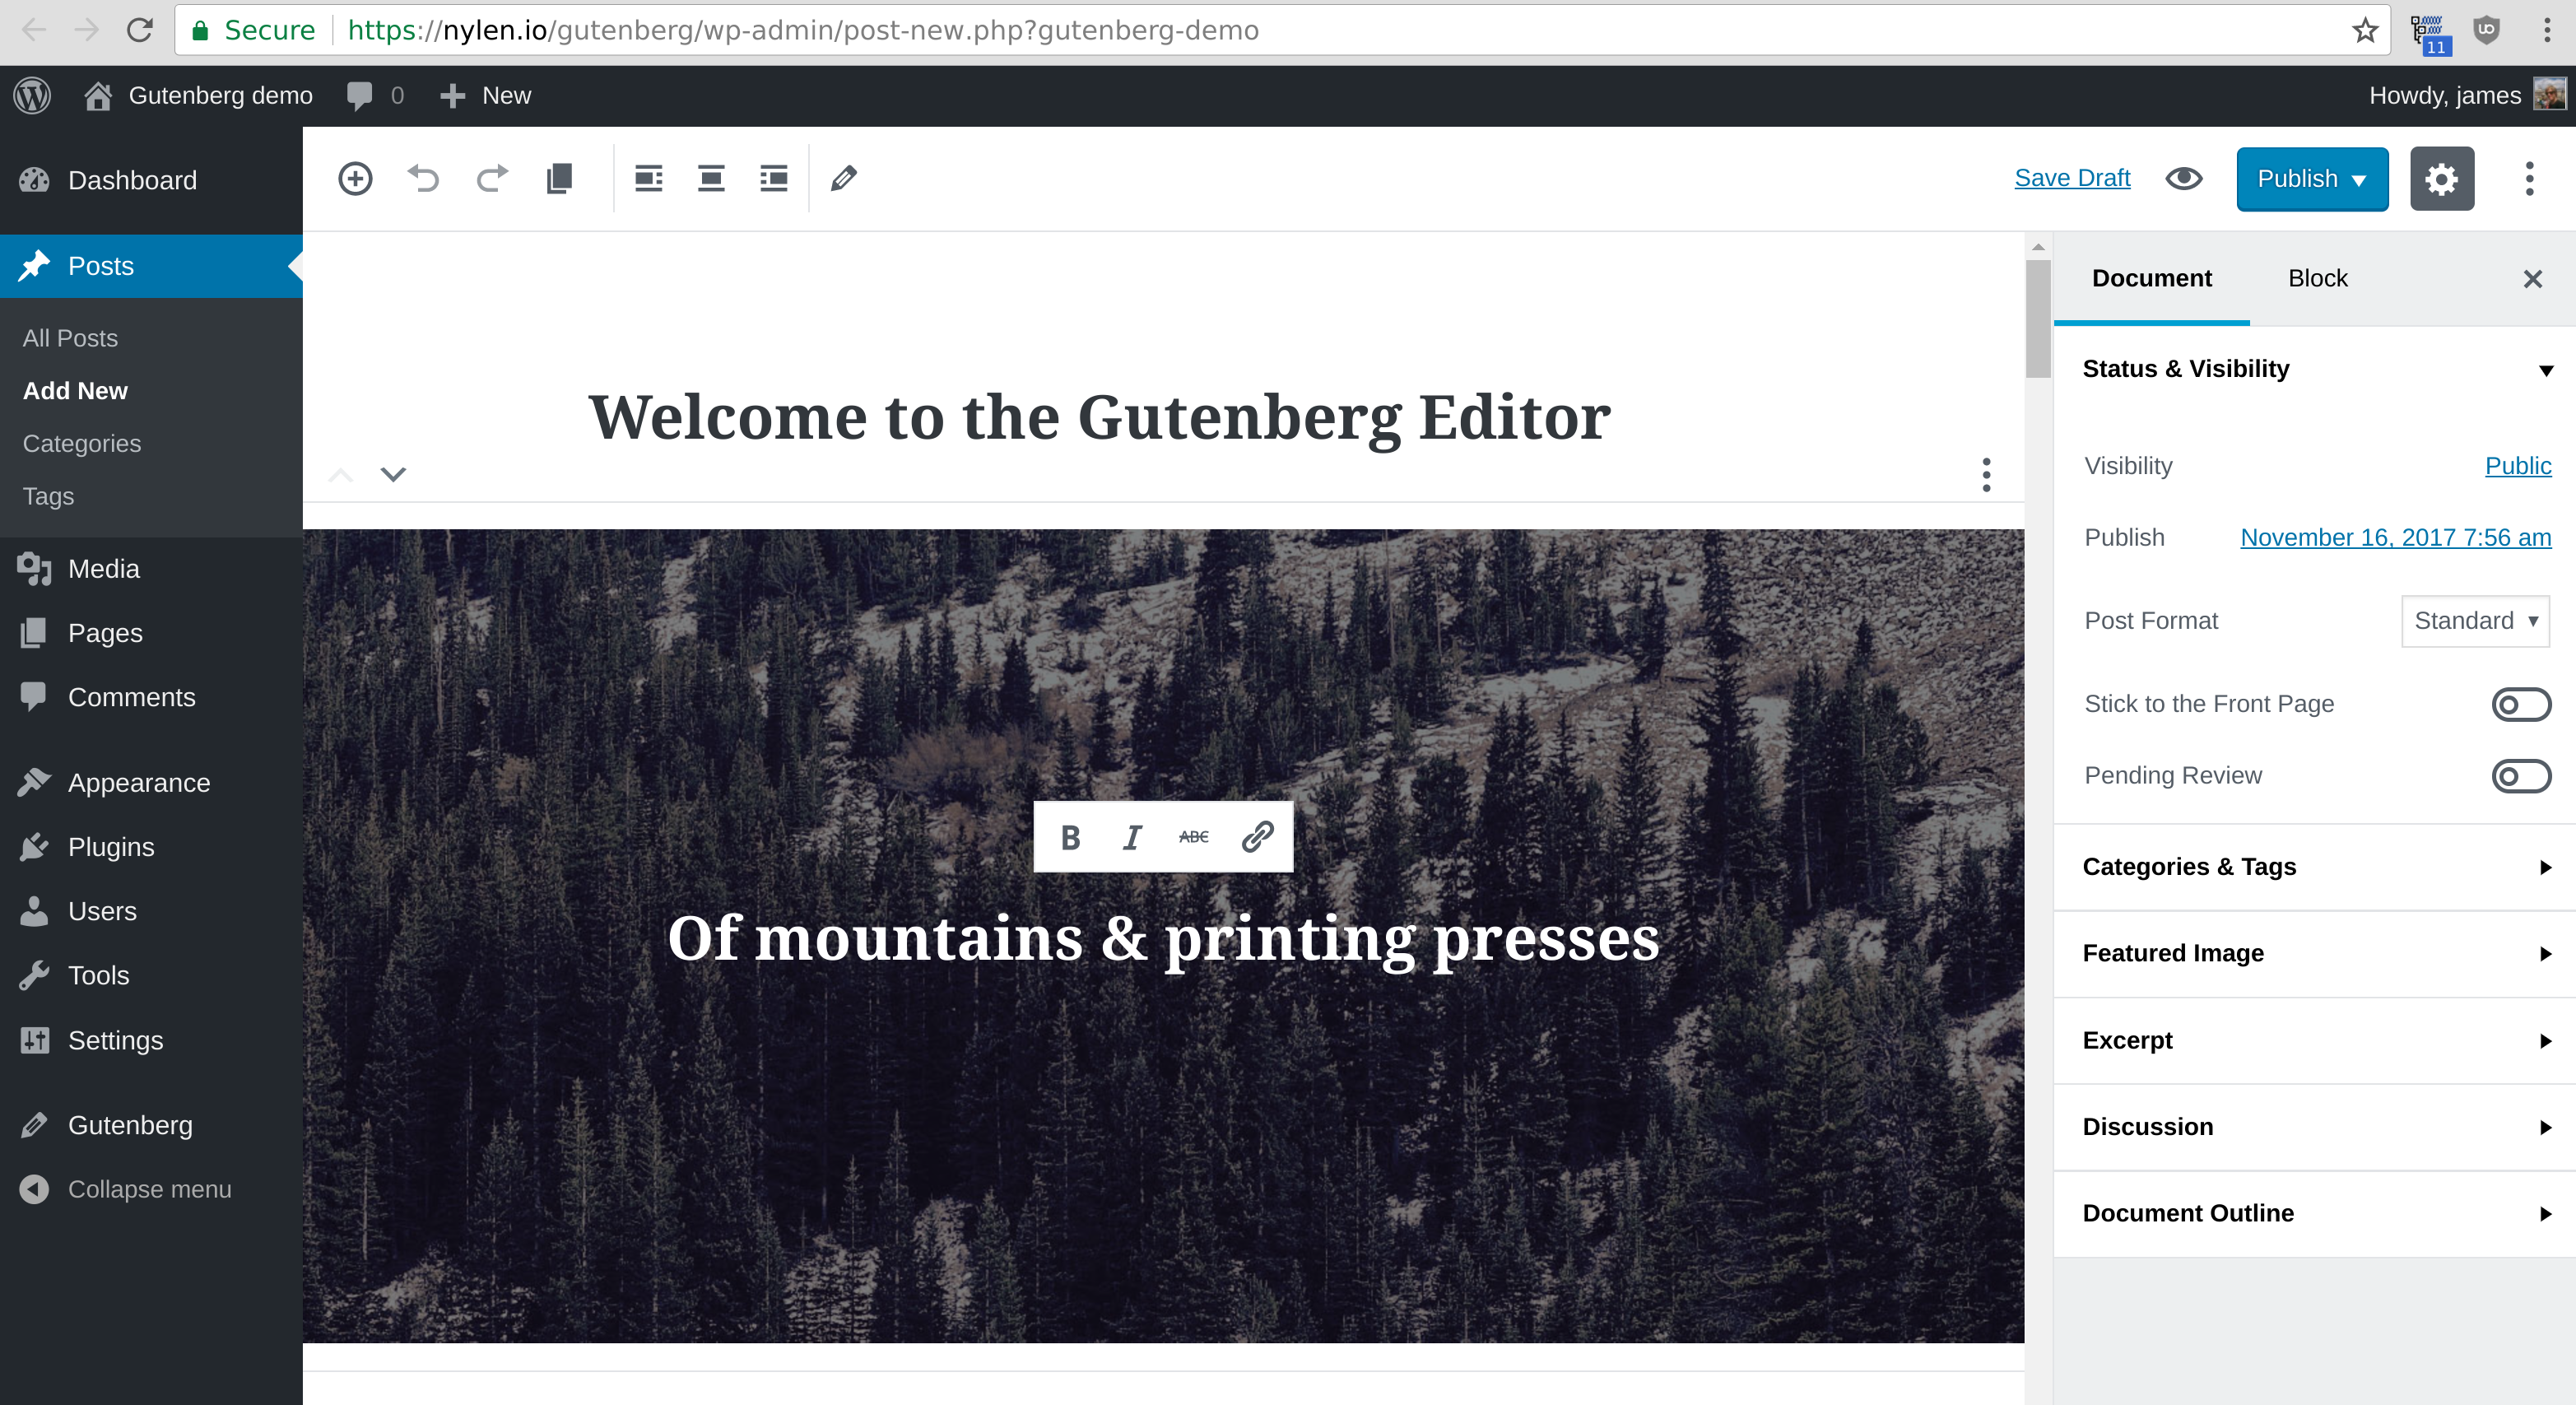 WordPress 5.0 release imminent with its Gutenberg editor going live December 6